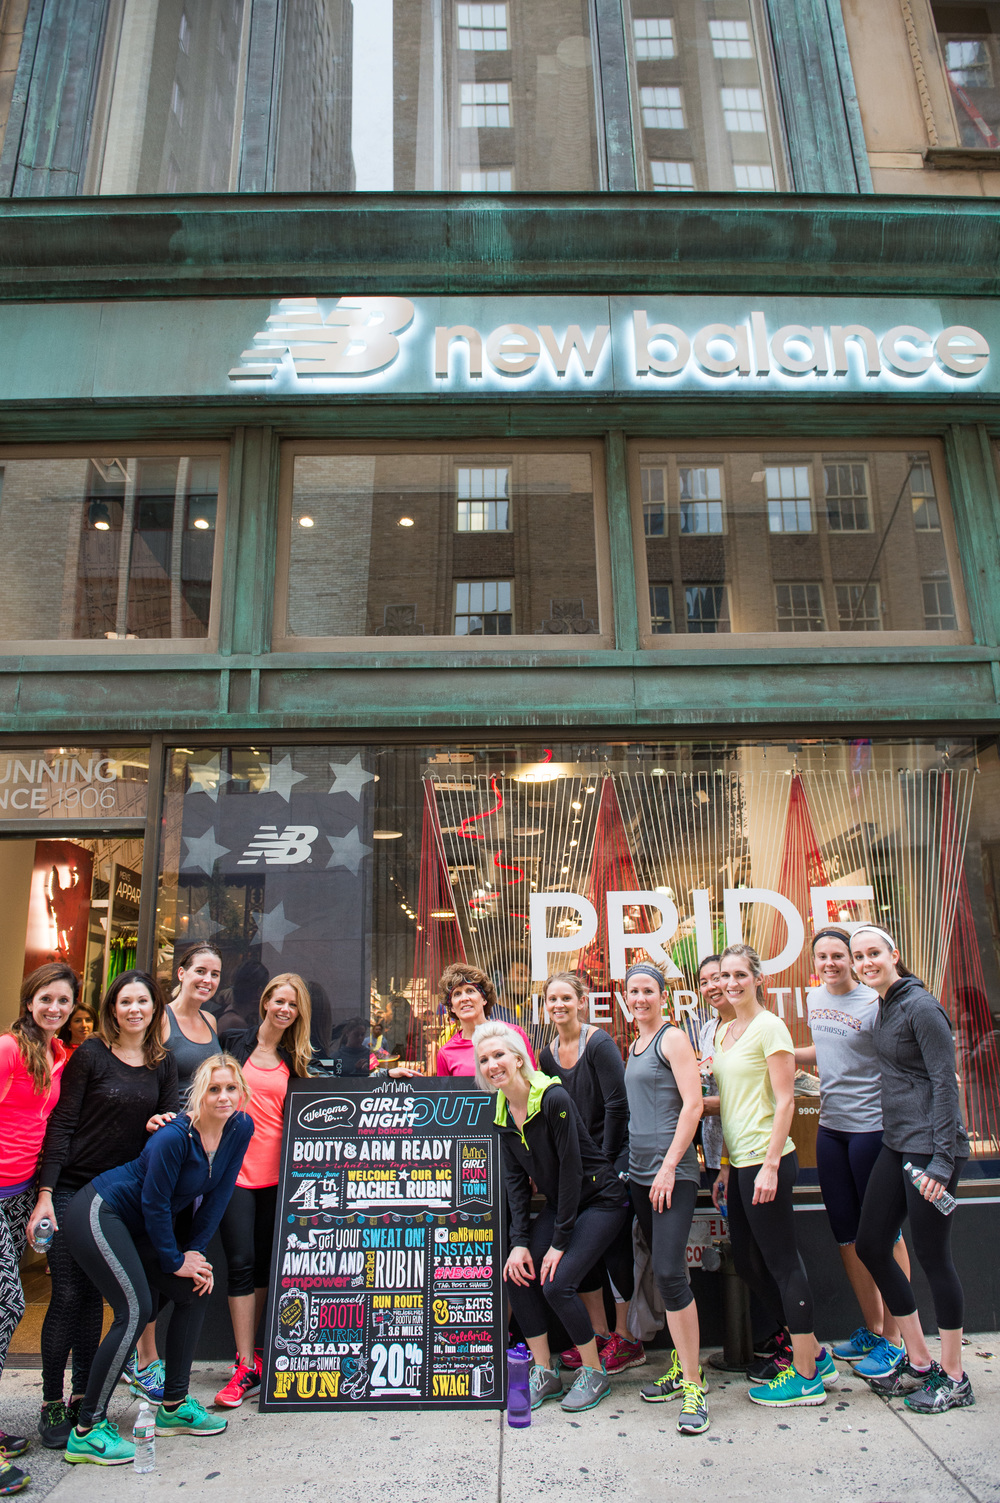 ae385ff48adde This summer I'm lucky enough to be bringing Girls Night Out to Philly with  the New Balance team! This city, my hometown, is the perfect place for this  ...